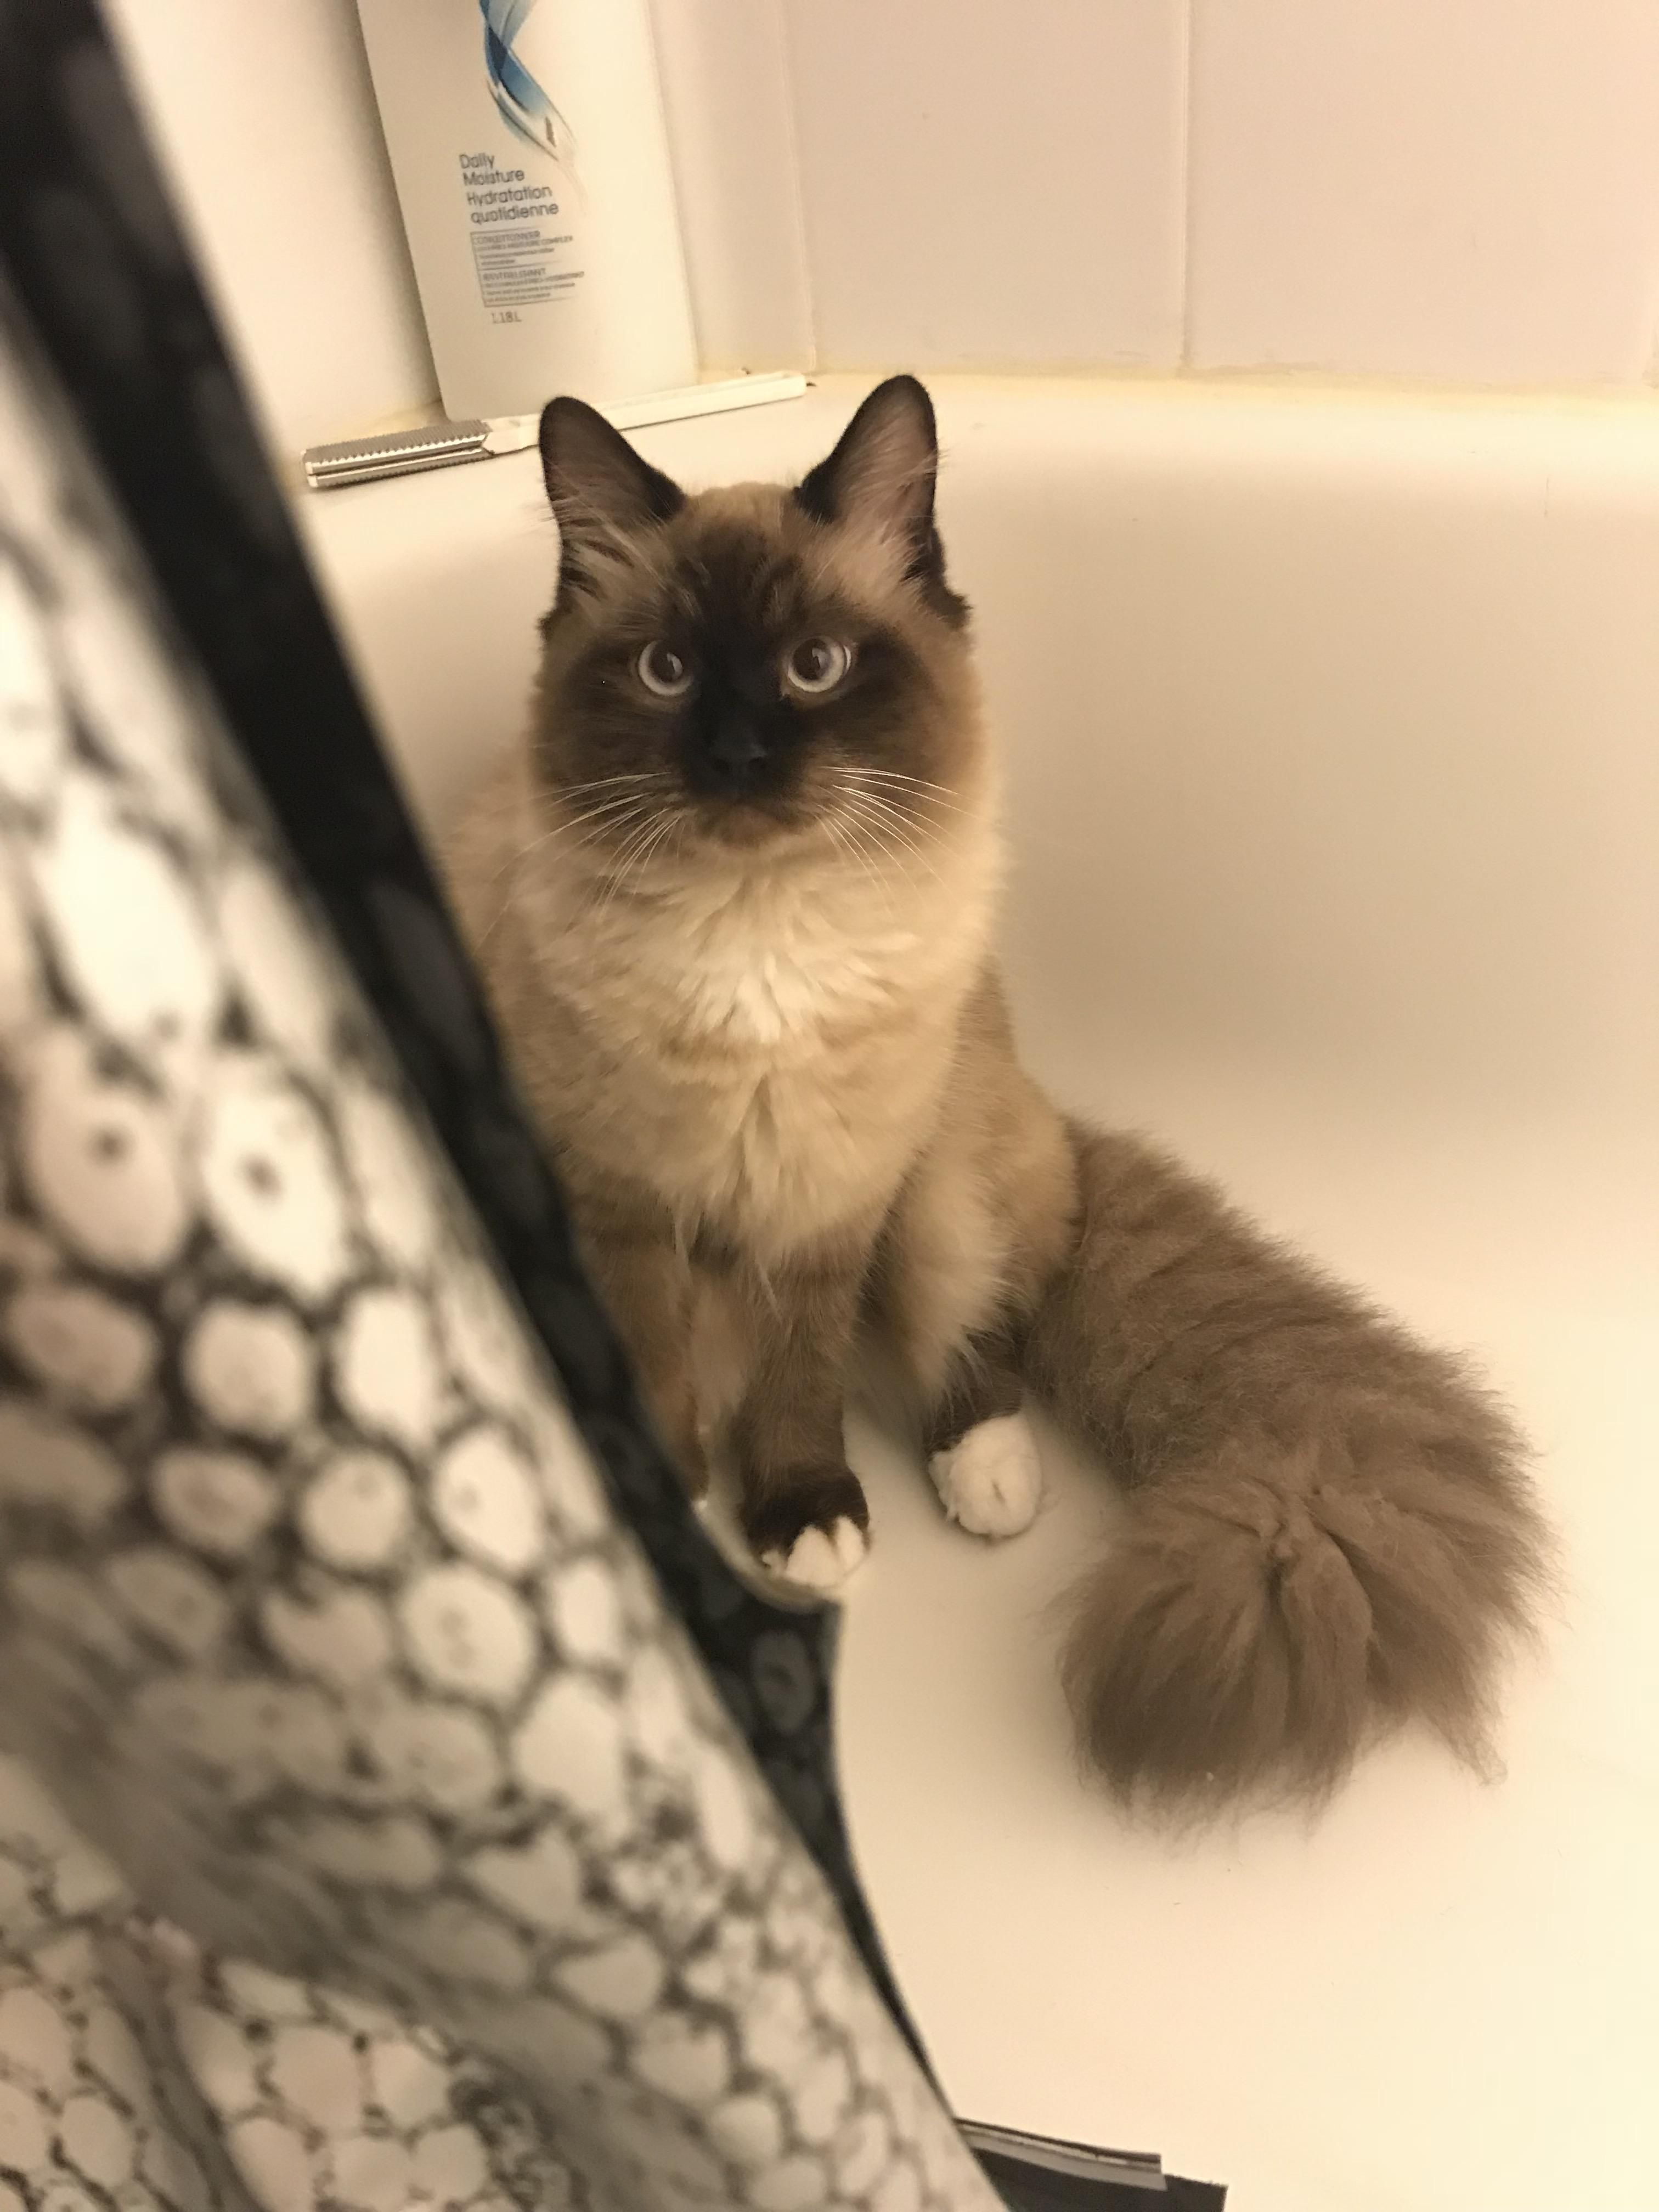 Henry Likes To Sit In The Tub And Stare Until